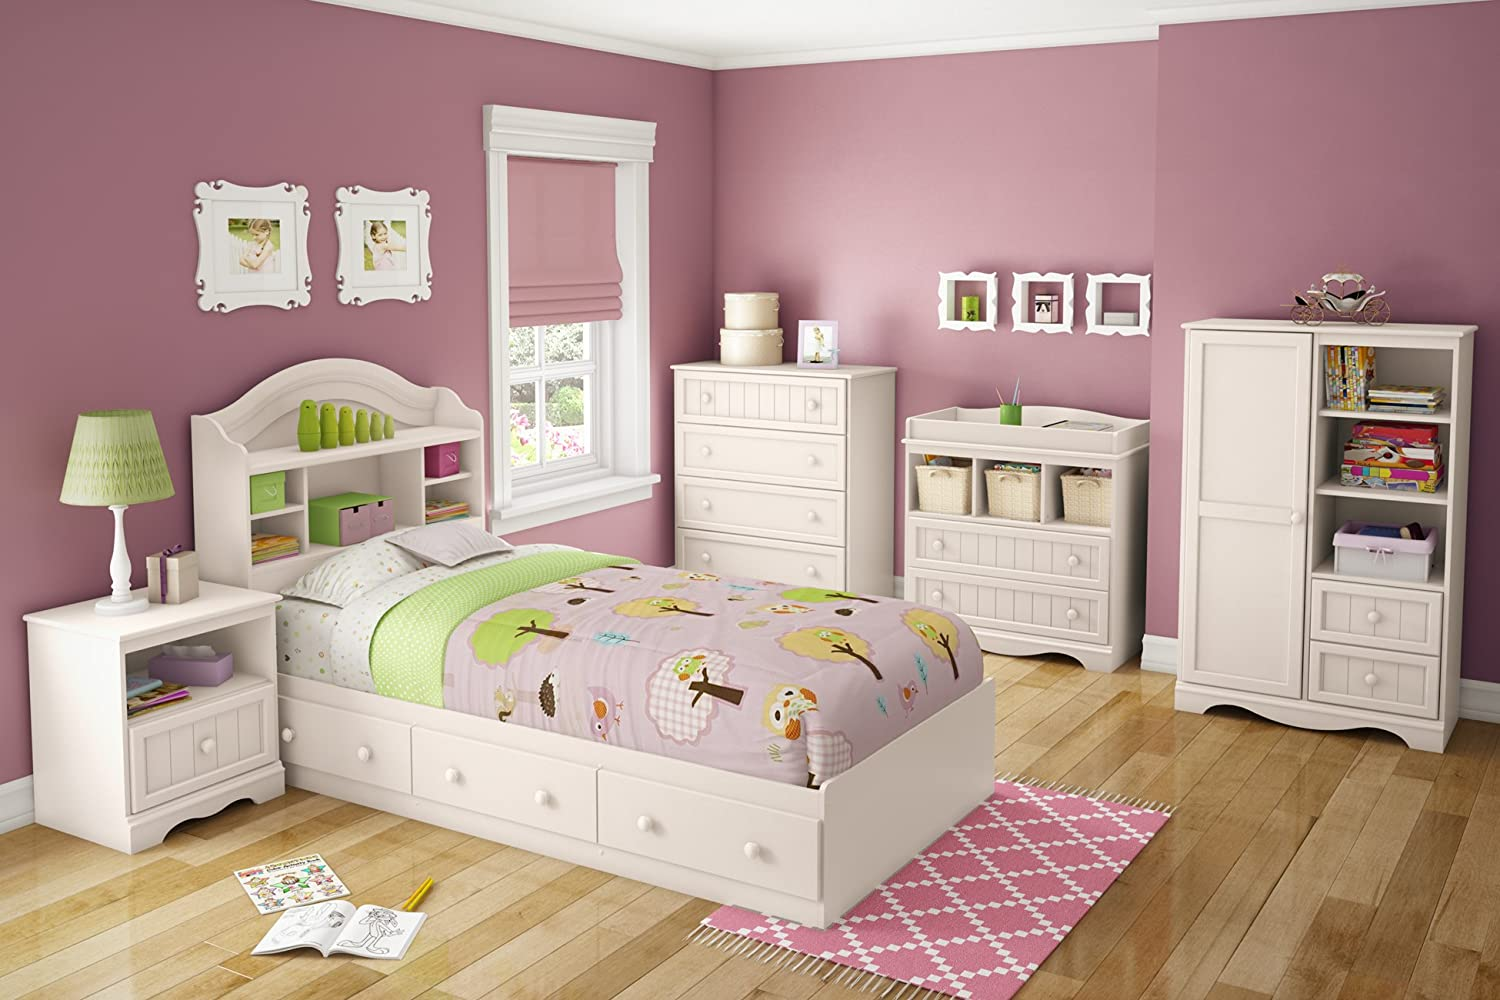 Superior Amazon.com: South Shore Savannah Collection Twin Bed, Pure White: Kitchen U0026  Dining